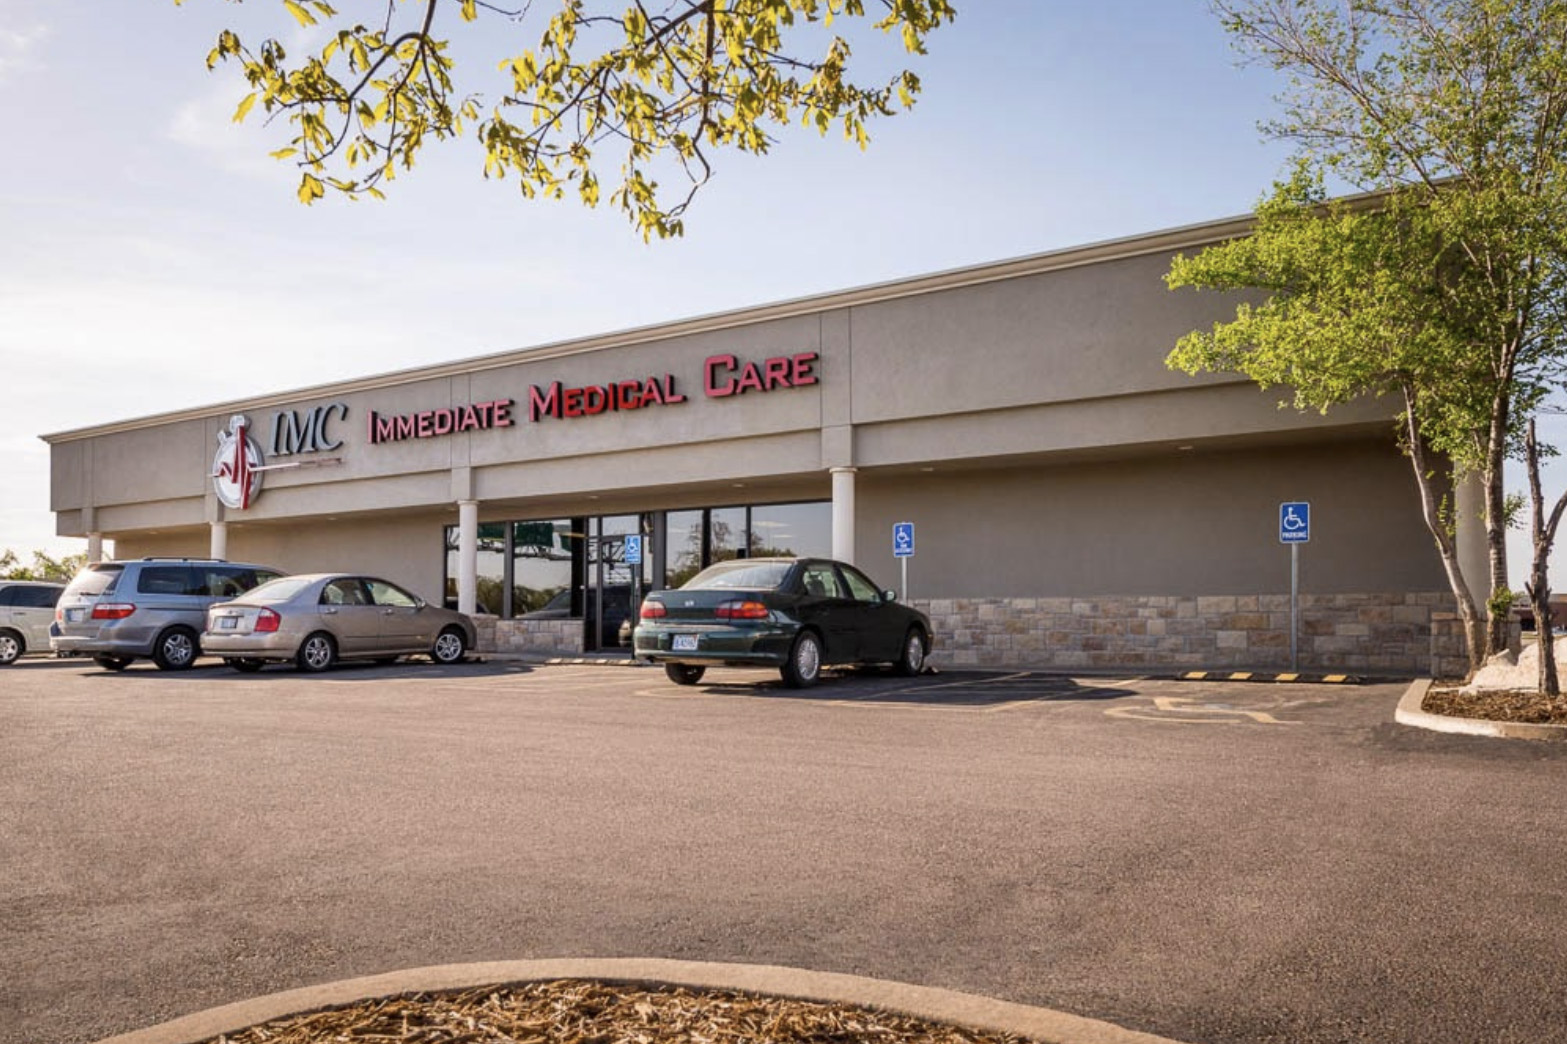 Immediate Medical Care Wichita Expanding to 2 New Locations